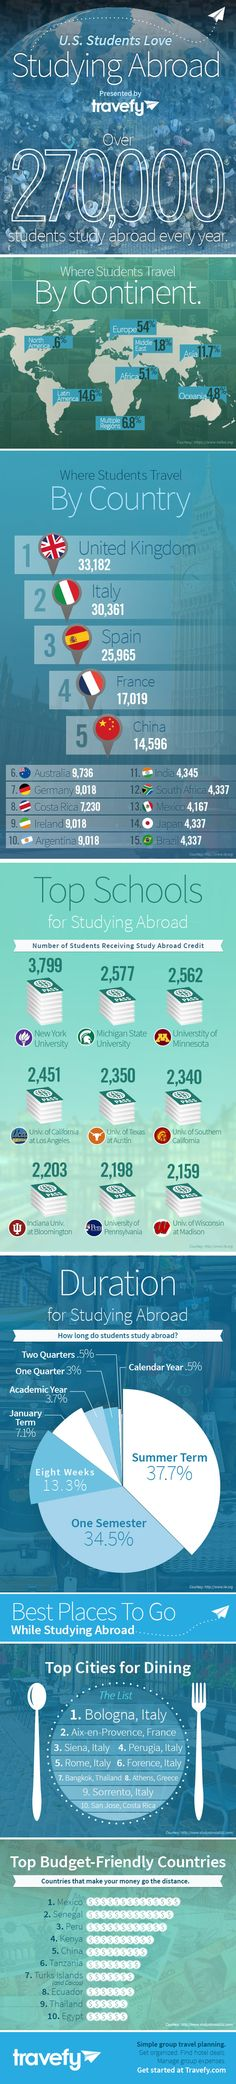 Travefy's College Students Love Studying Abroad - INFOGRAPHIC